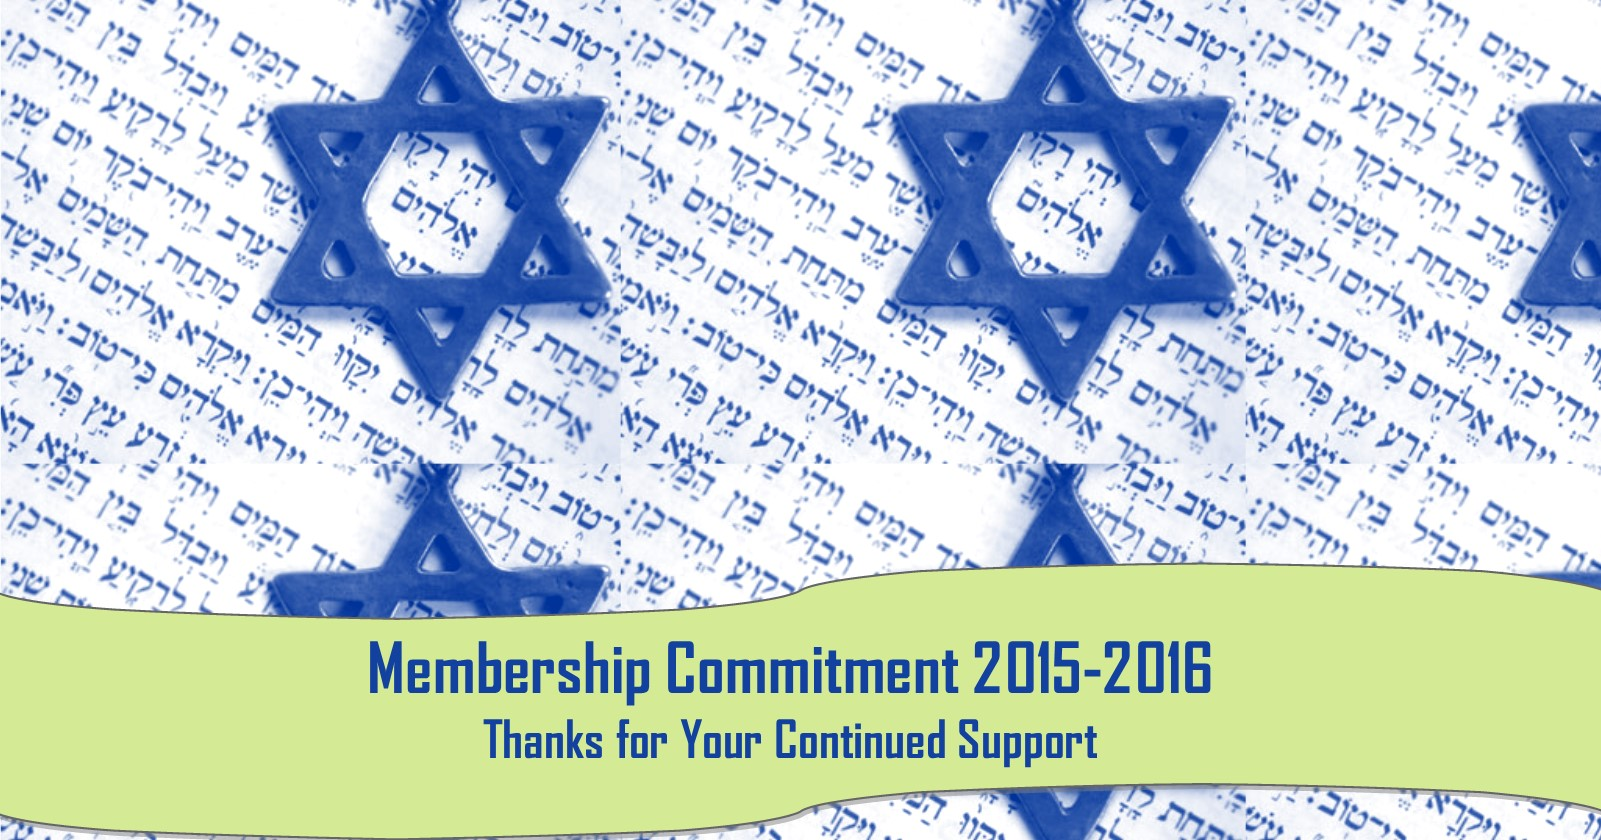 Membership-Commitment-2015